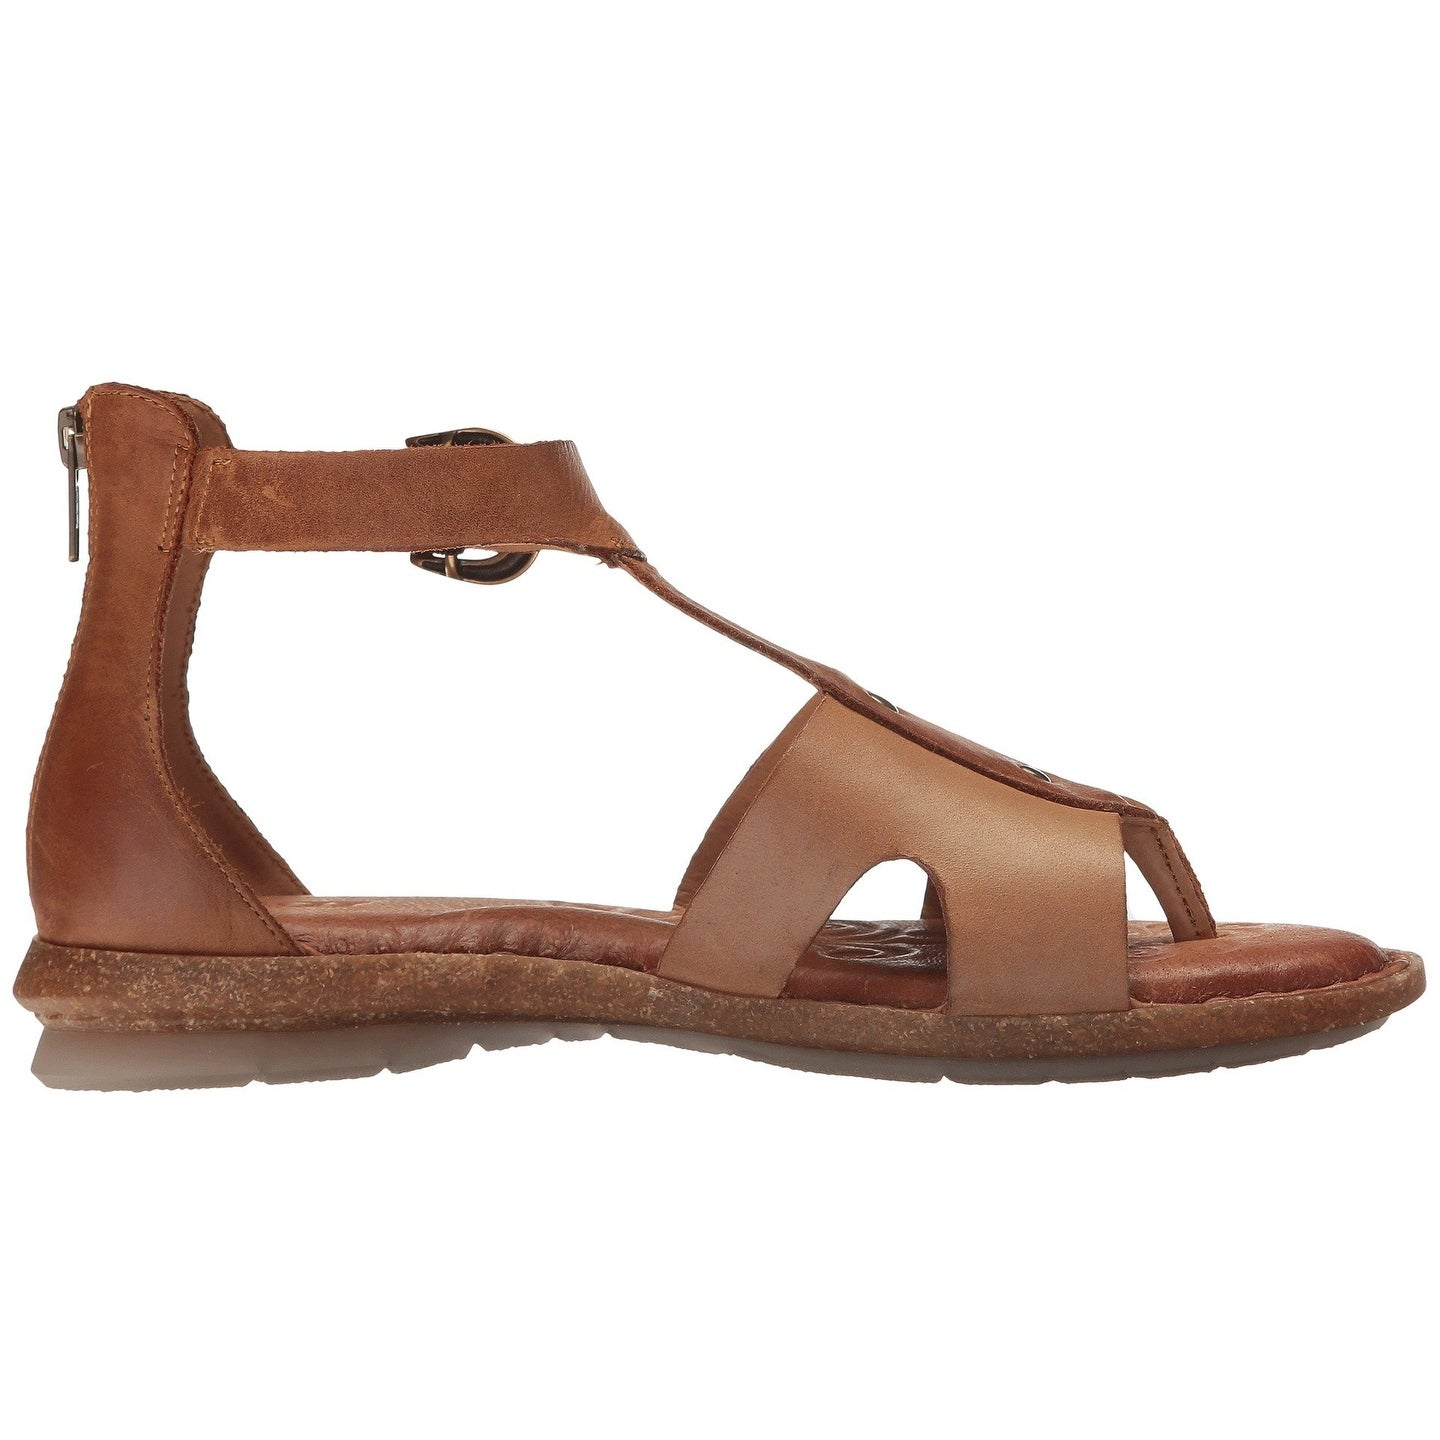 a8a4a9171327 Shop Born Womens Timina Leather Open Toe Casual T-Strap Sandals - 8 - On  Sale - Free Shipping Today - Overstock.com - 22308094